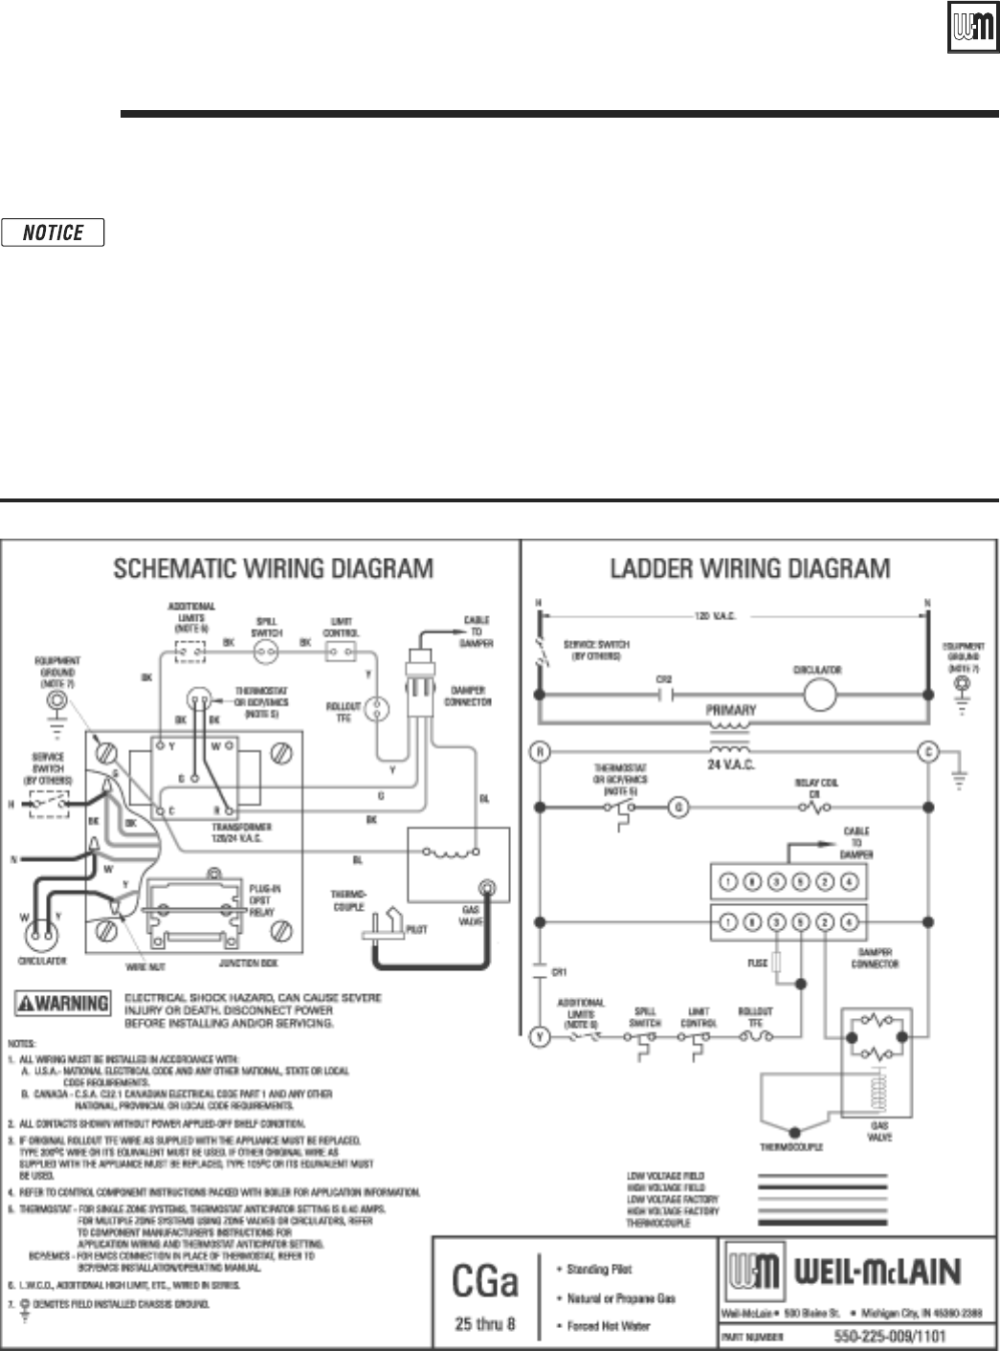 medium resolution of weil mclain wiring diagram wiring diagrams wni weil mclain steam boiler wiring diagram weil mclain wiring diagram